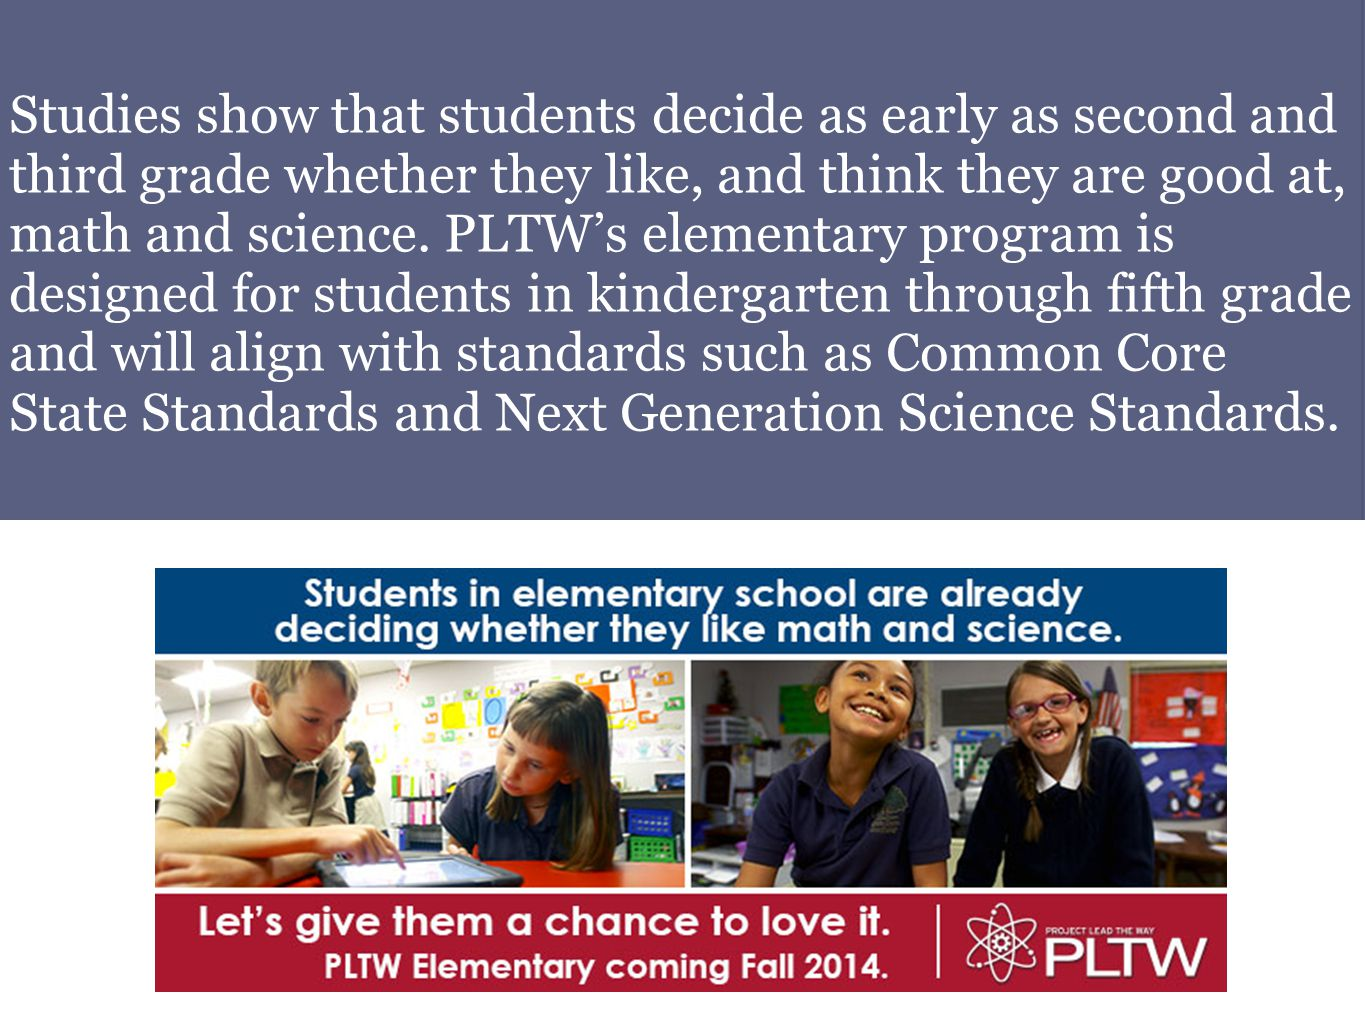 Studies show that students decide as early as second and third grade whether they like, and think they are good at, math and science. PLTW's elementar